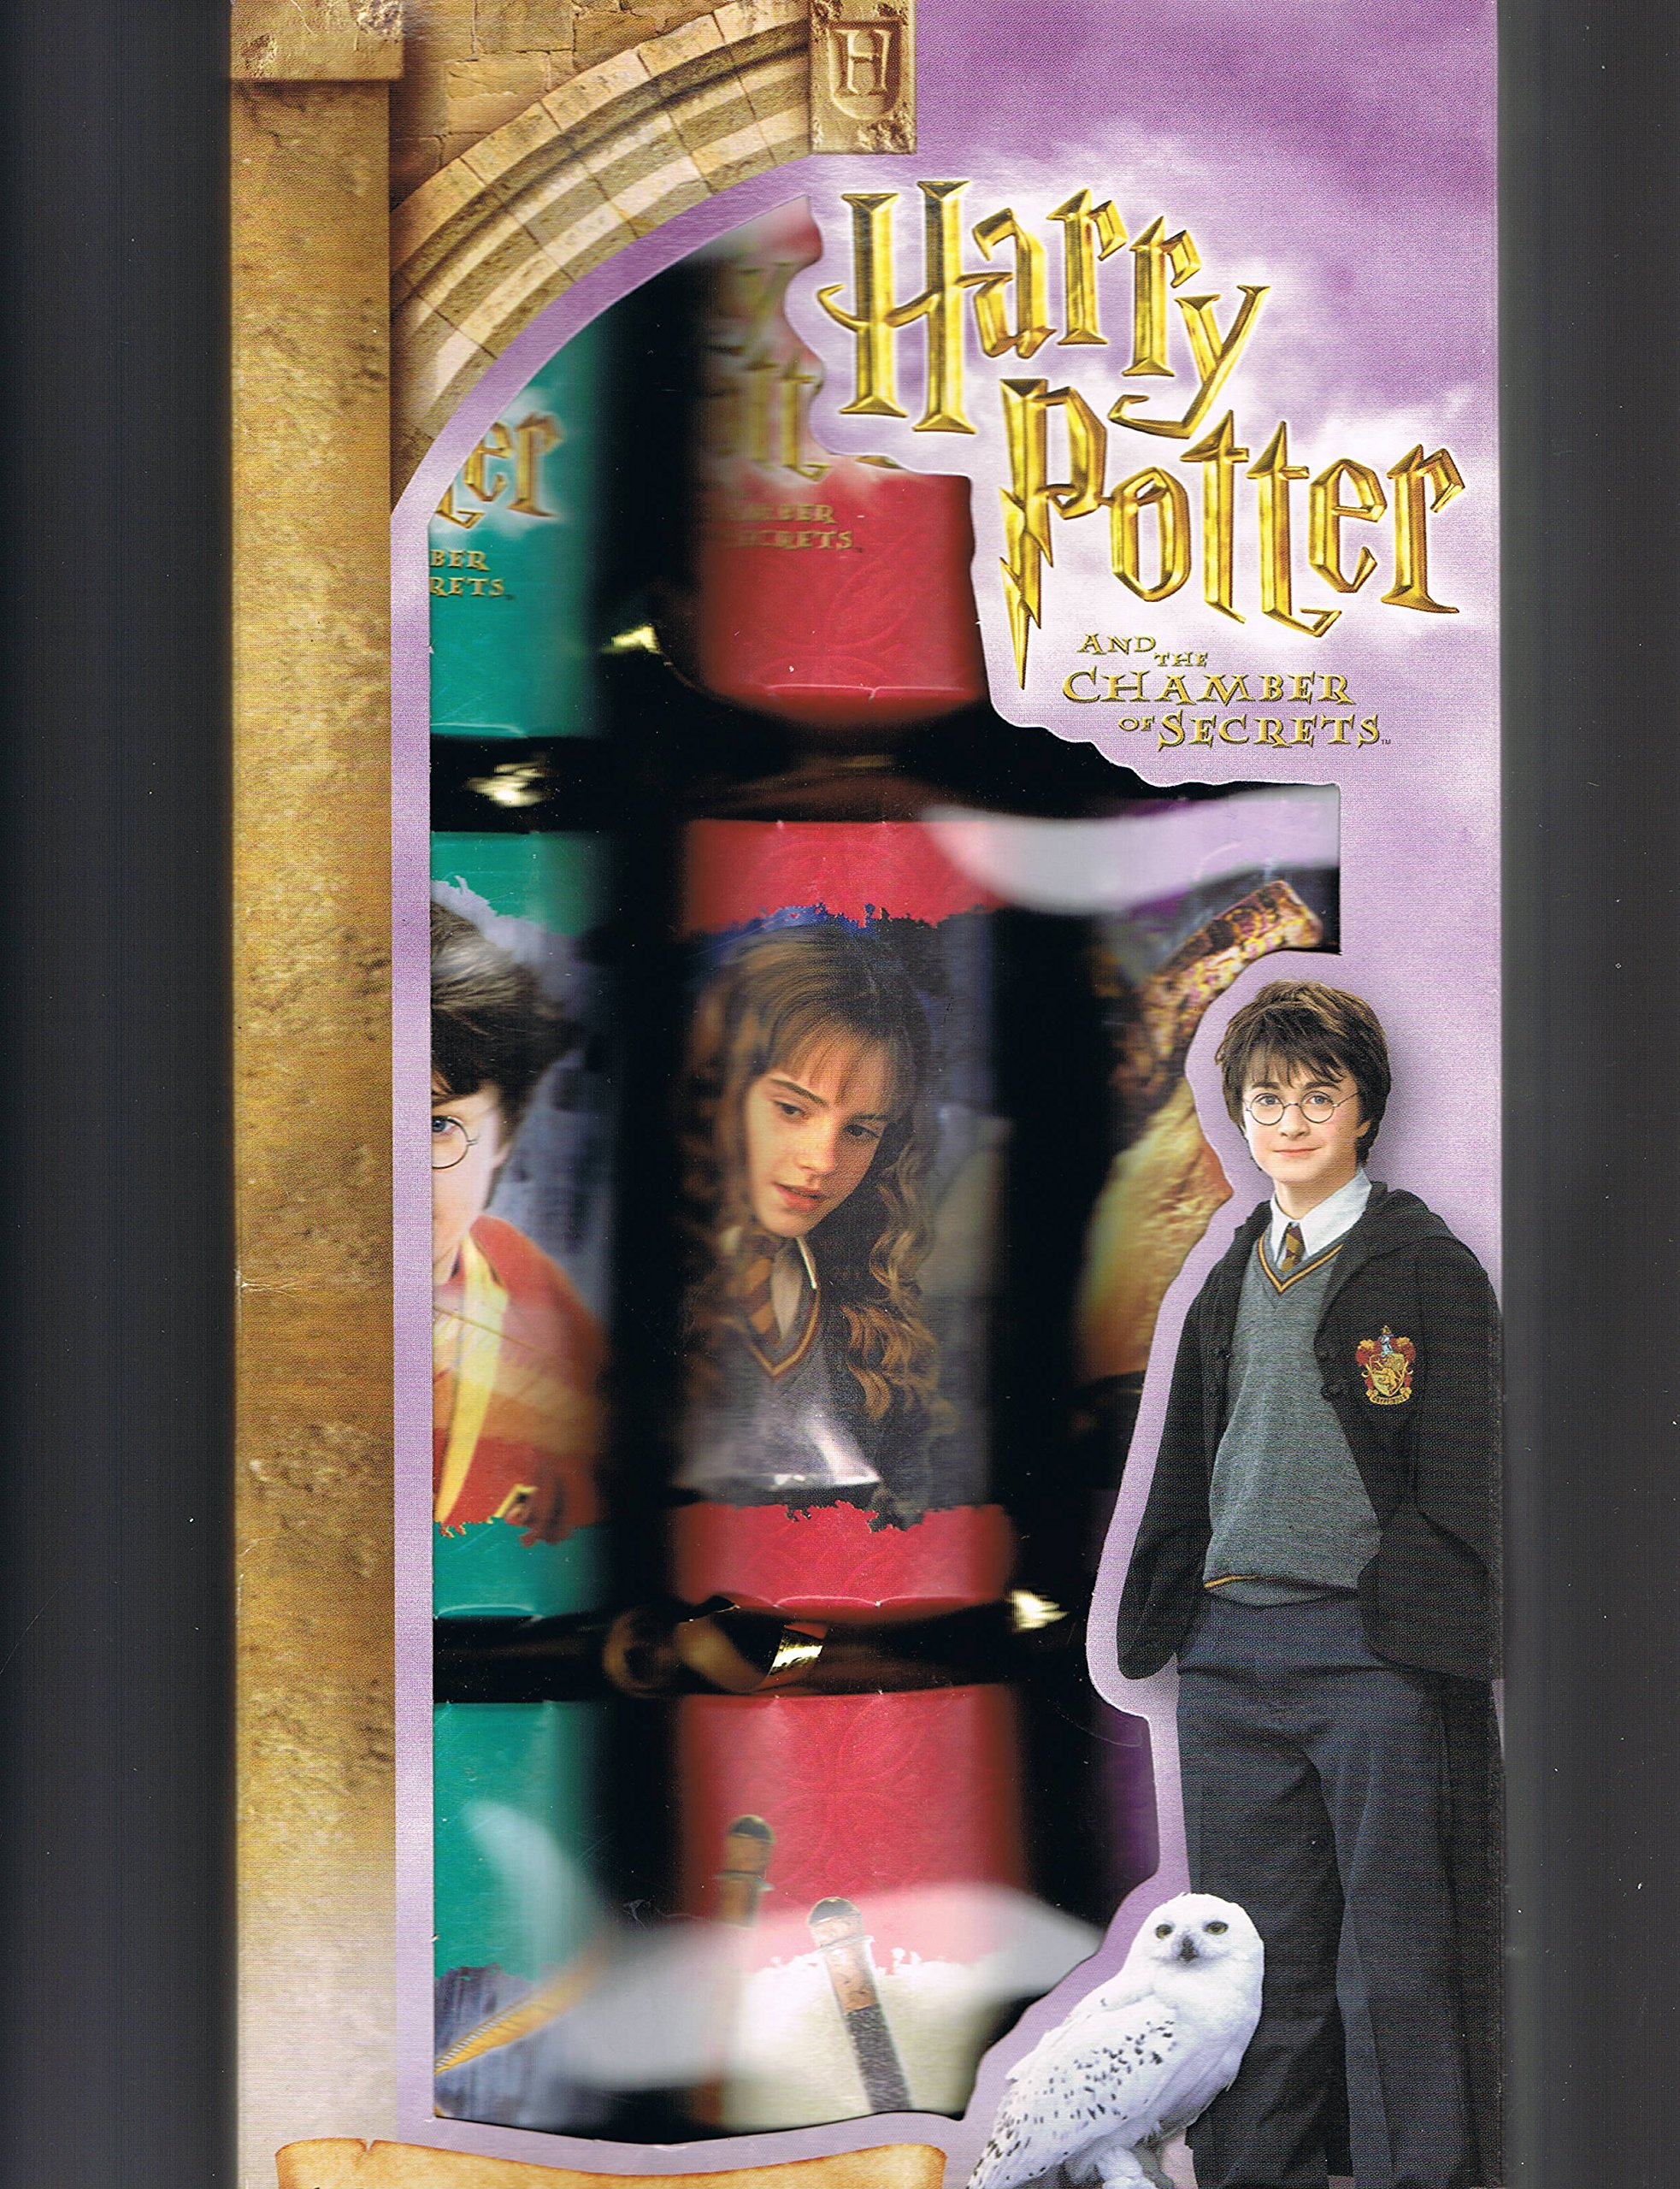 Harry Potter Box of Holiday or Party Favor Crackers by Harry Potter